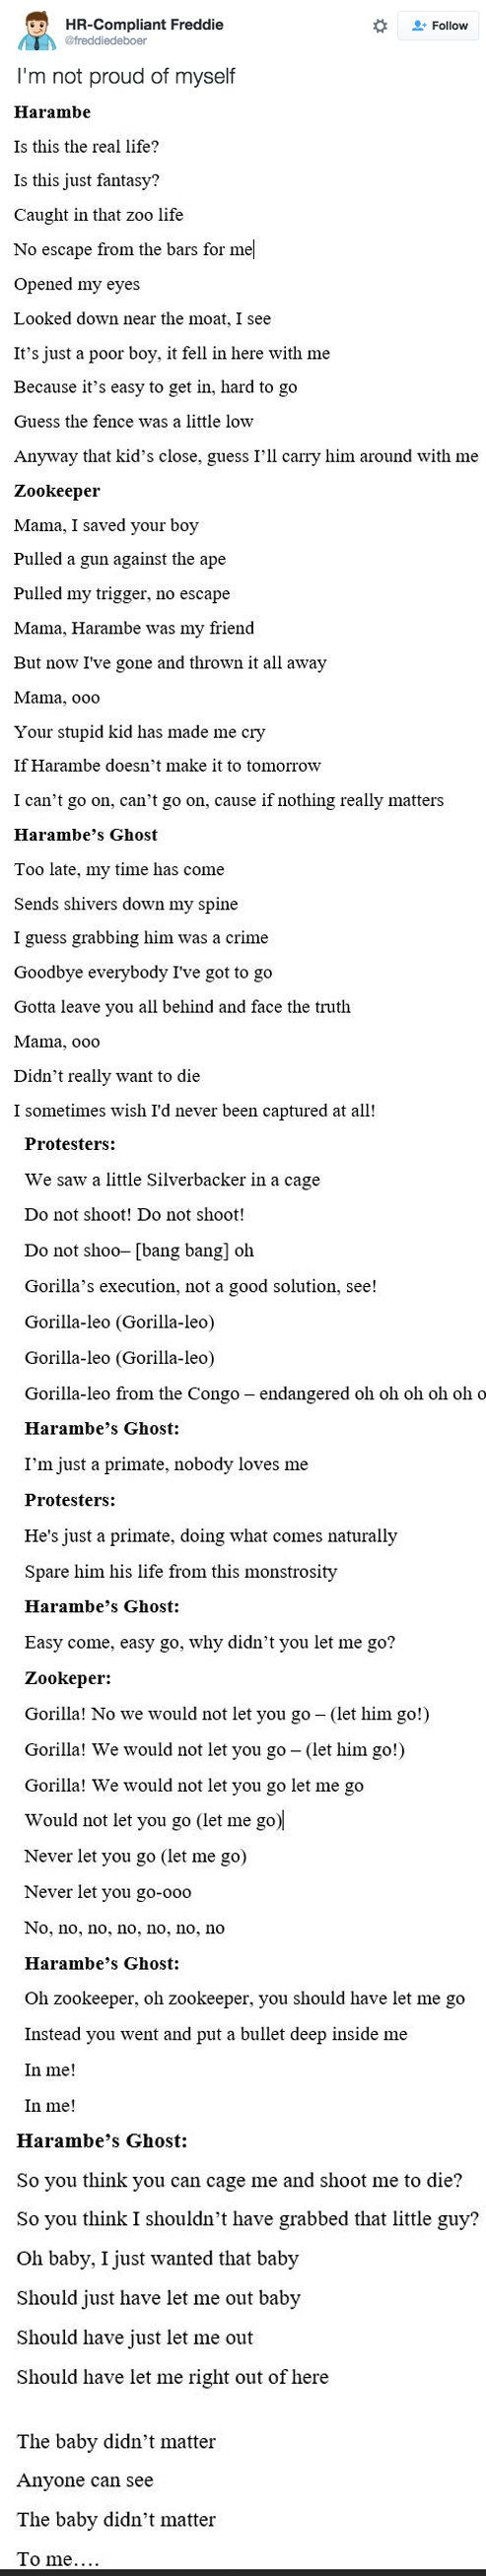 although this is black humor i still want to point out that zoos should be forbidden and especially capturing of gorillas, orangutans and other creatures that so obviously have awareness of at least of a 2 year old human